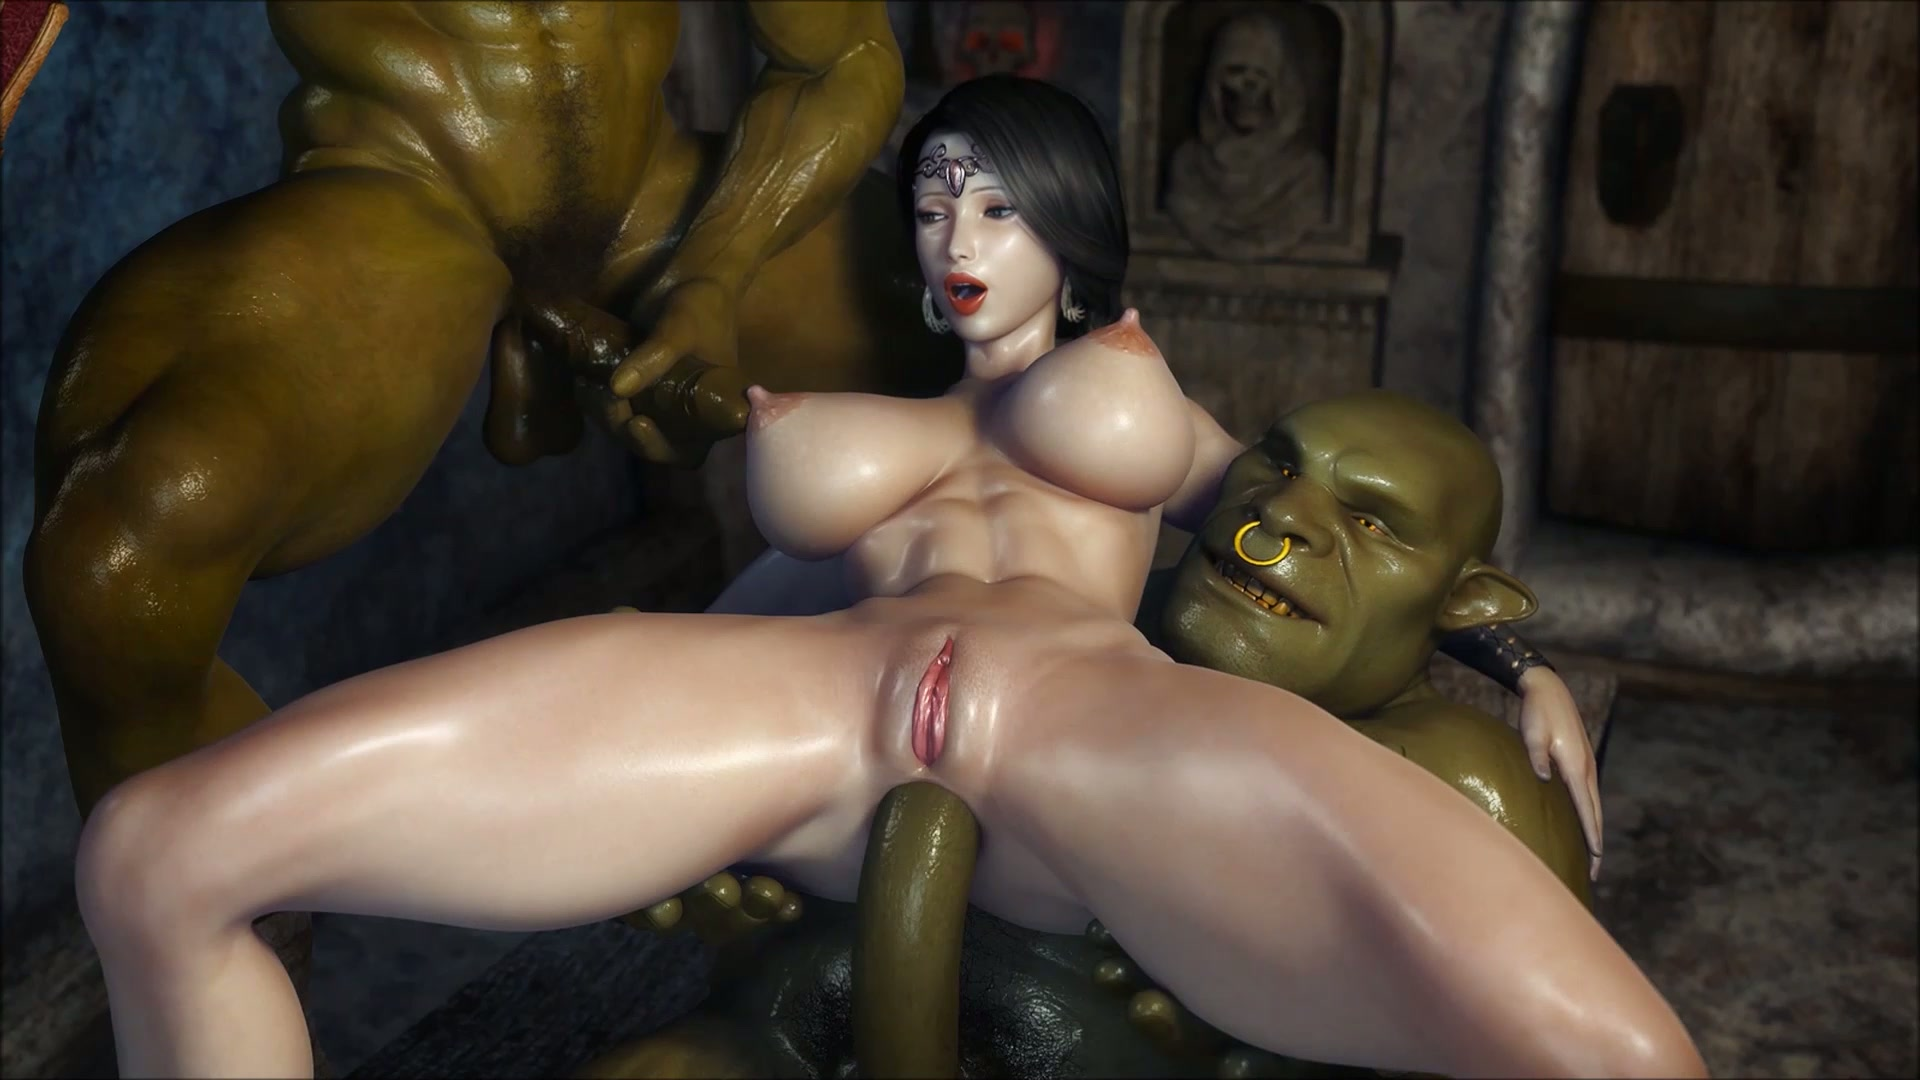 animated-monster-anal-porn-public-naked-women